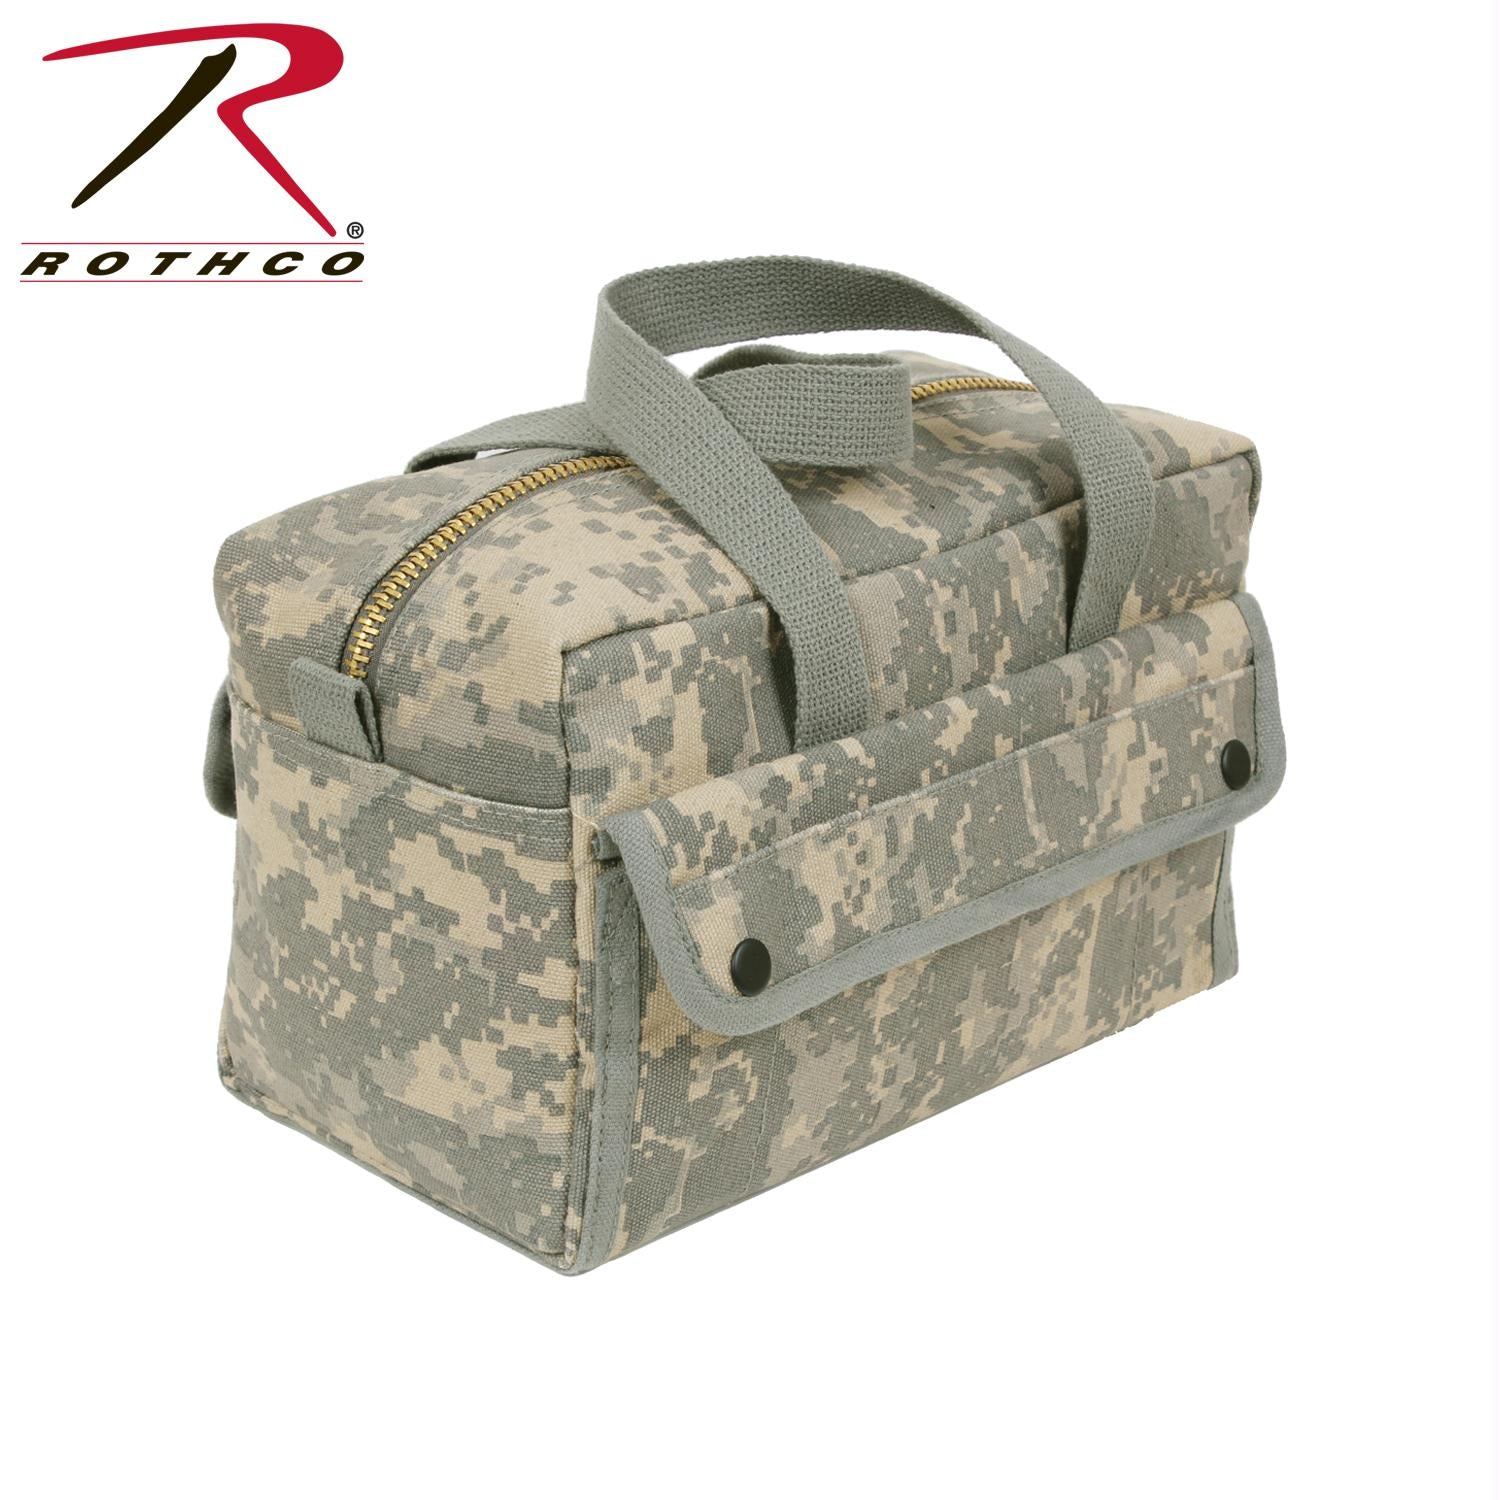 Rothco G.I. Type Mechanics Tool Bag With Brass Zipper - ACU Digital Camo